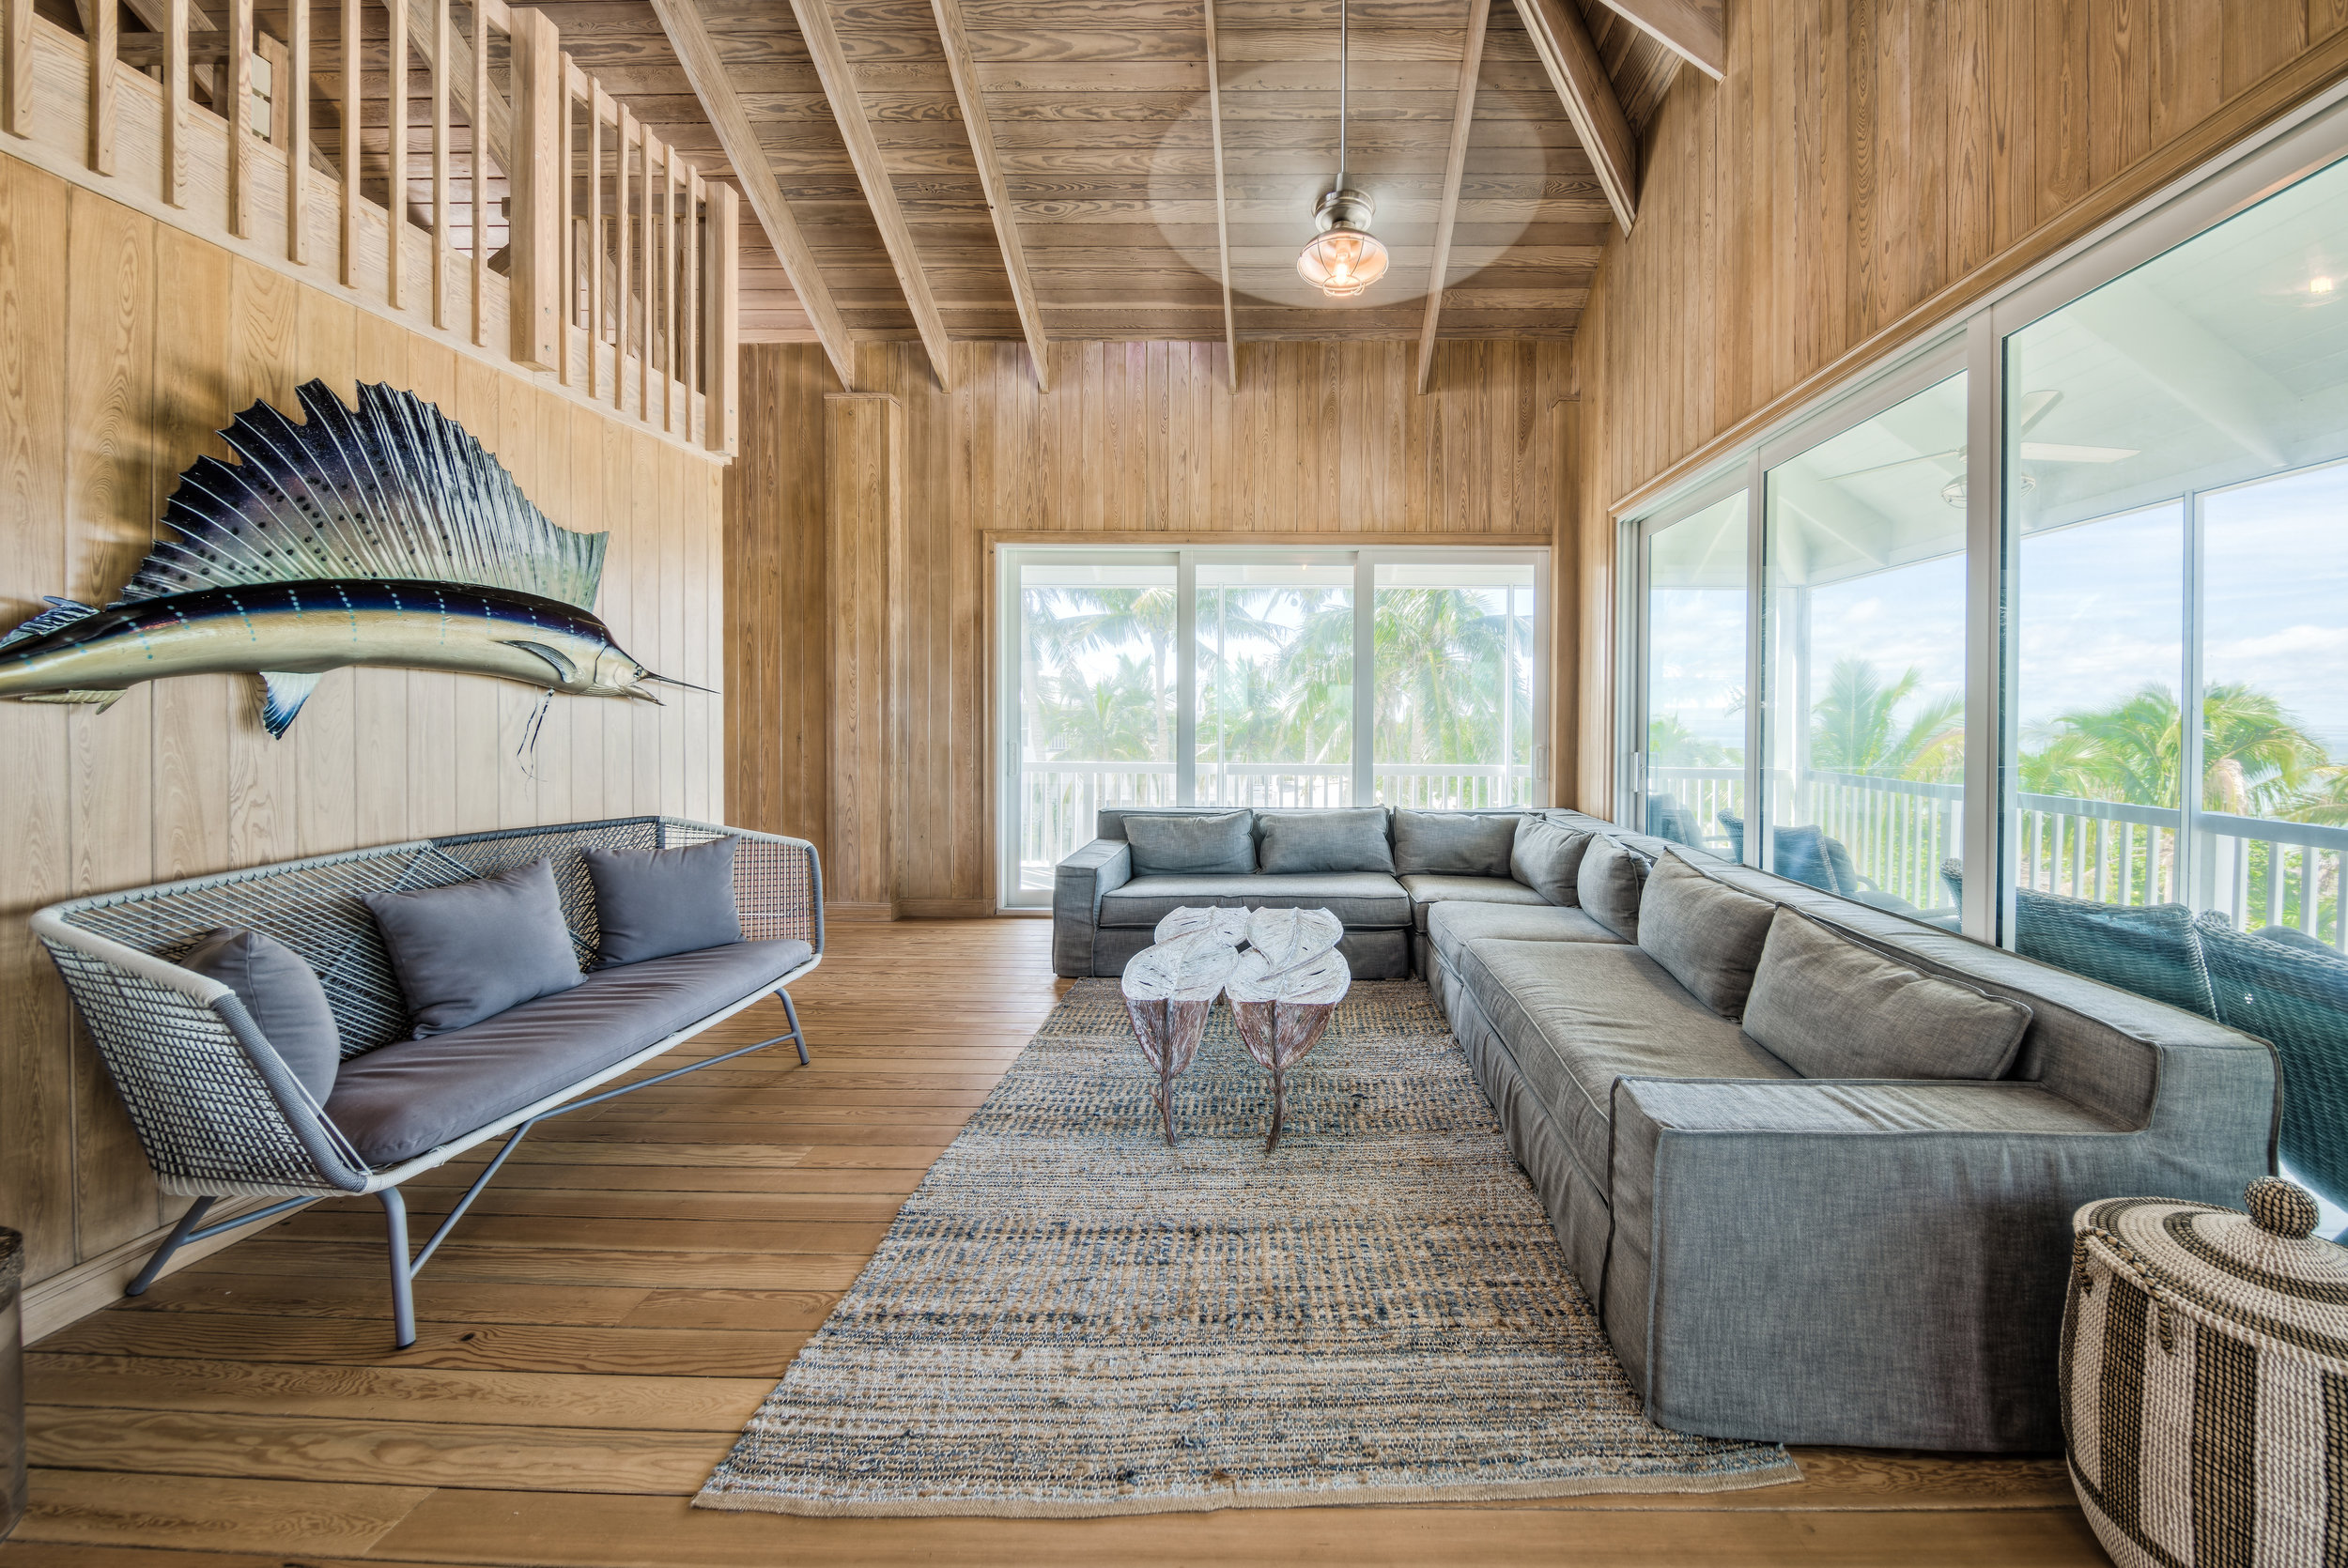 Private Island Beach House Open-concept architectural restructuring for main living area including furniture plan and artist commission table